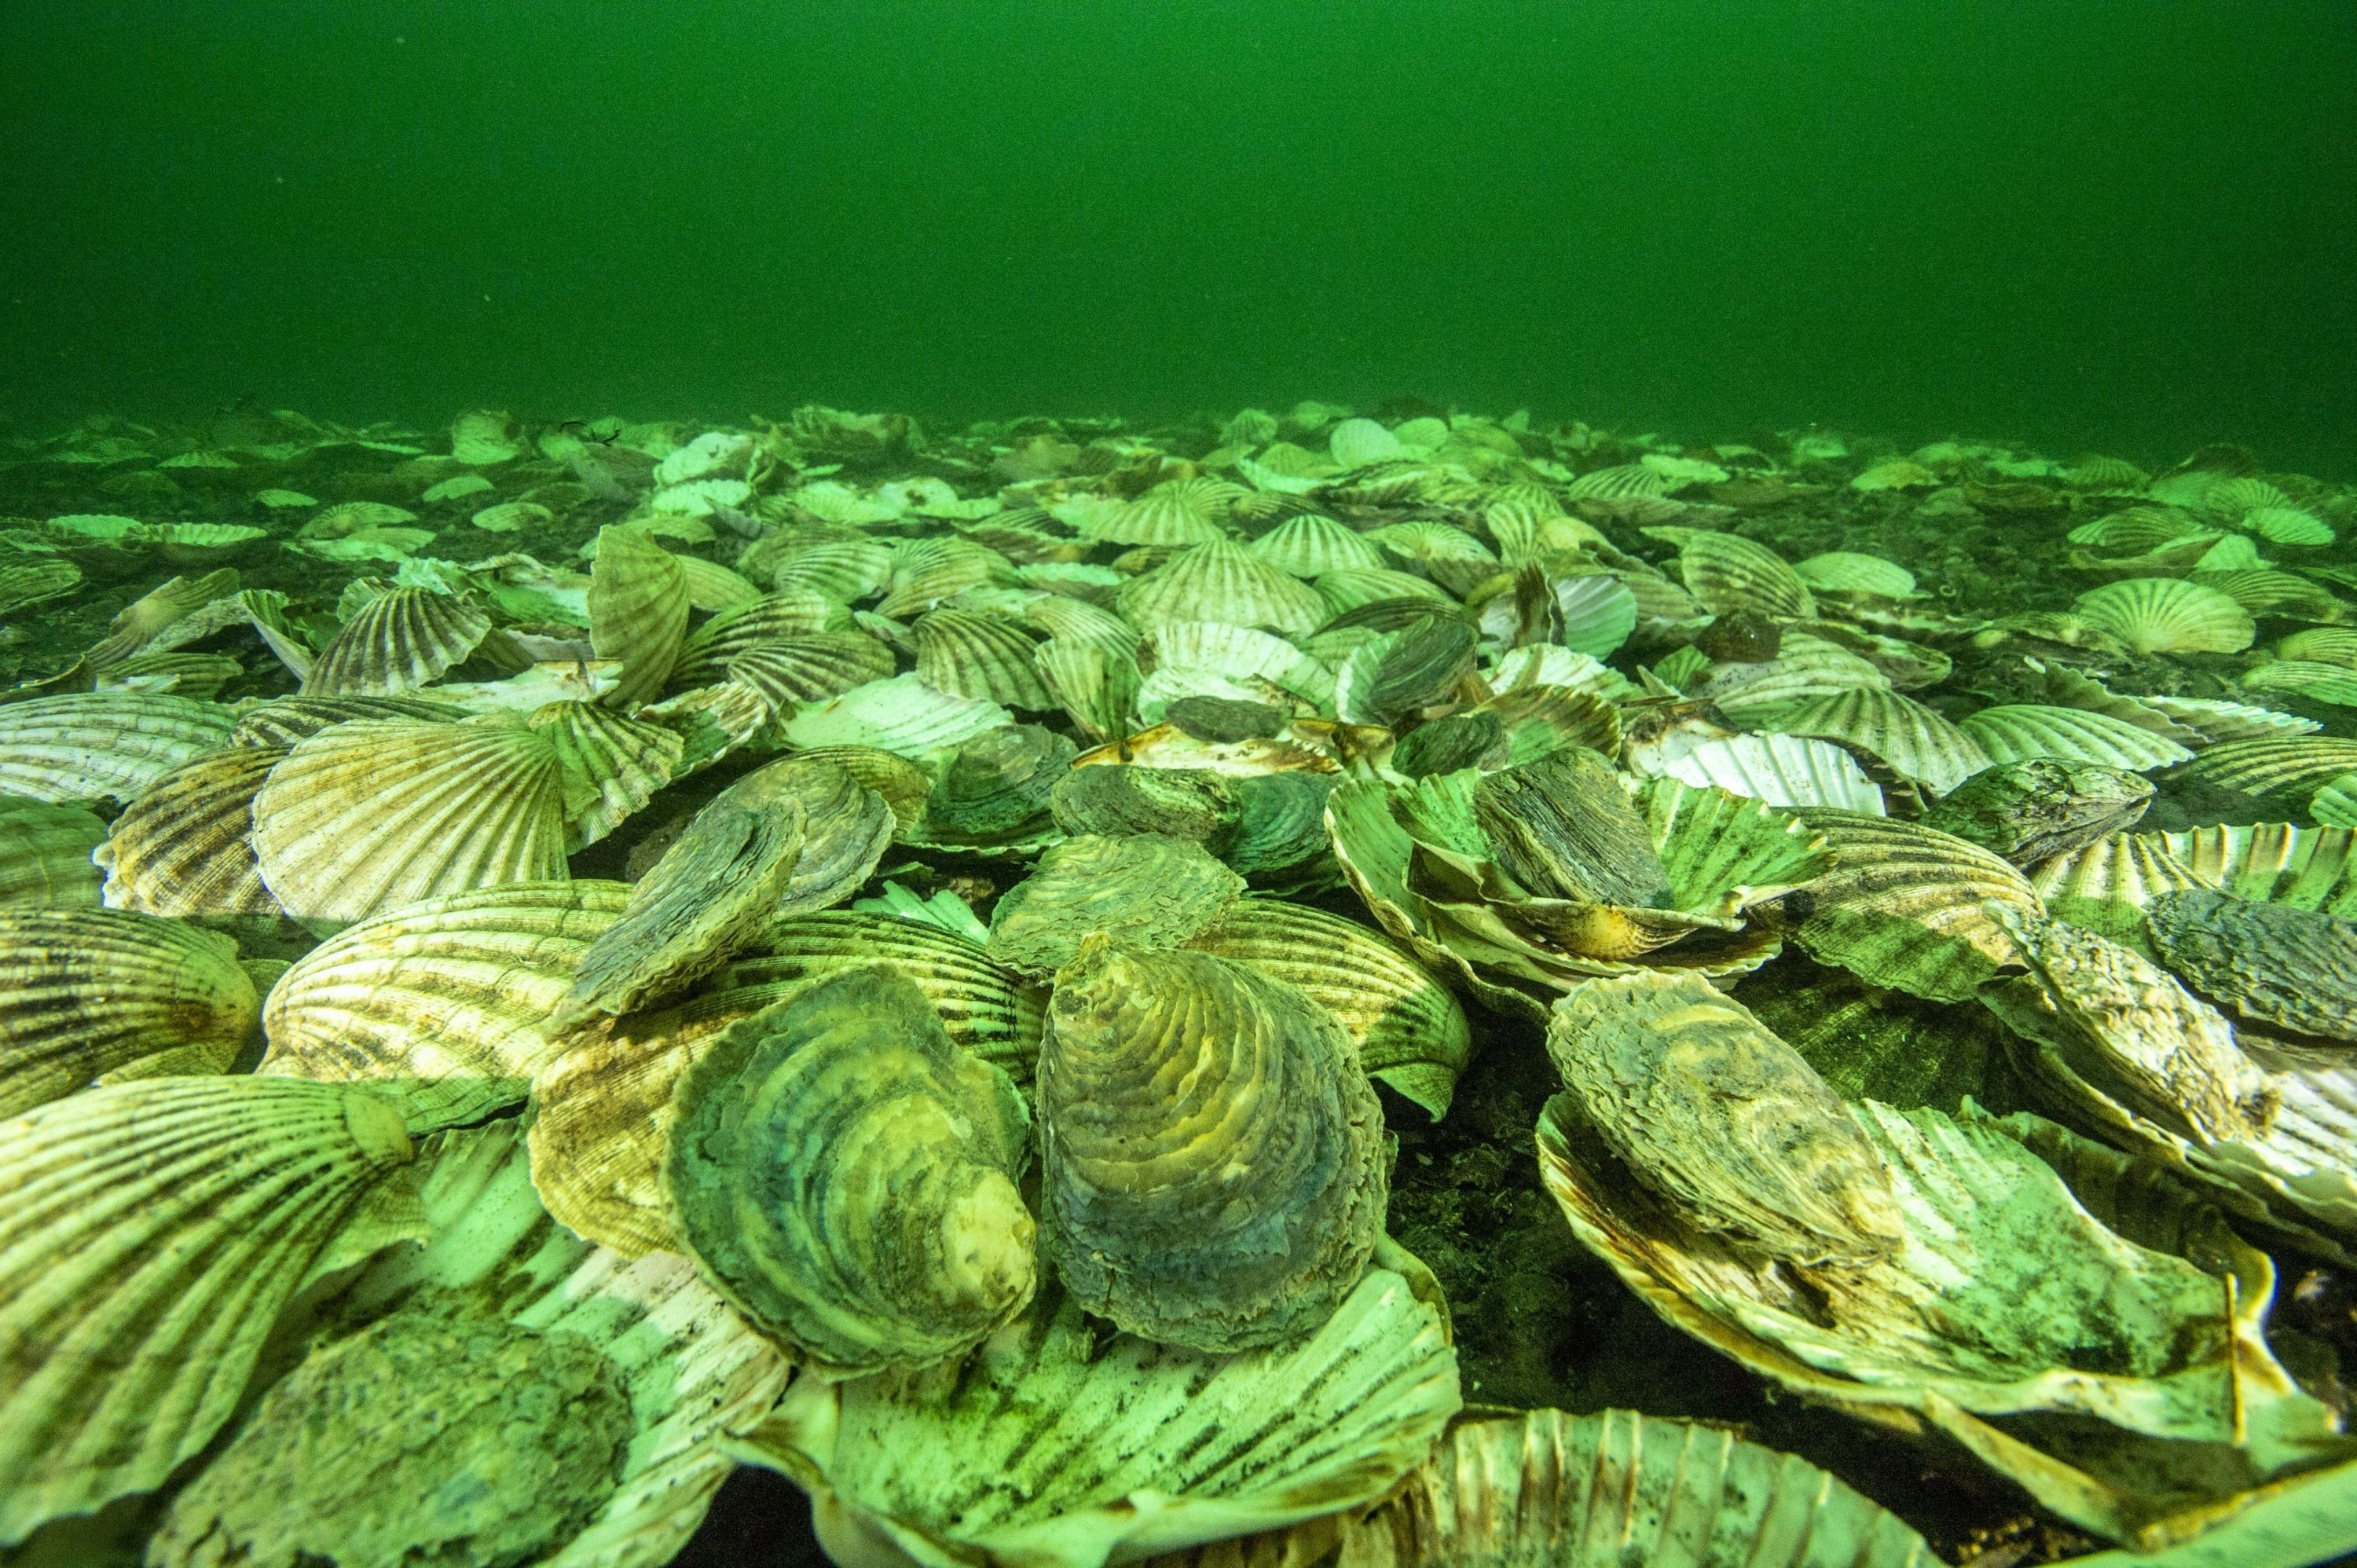 Native European Oysters settle in to their newly created home on the bottom of the Dornoch Firth